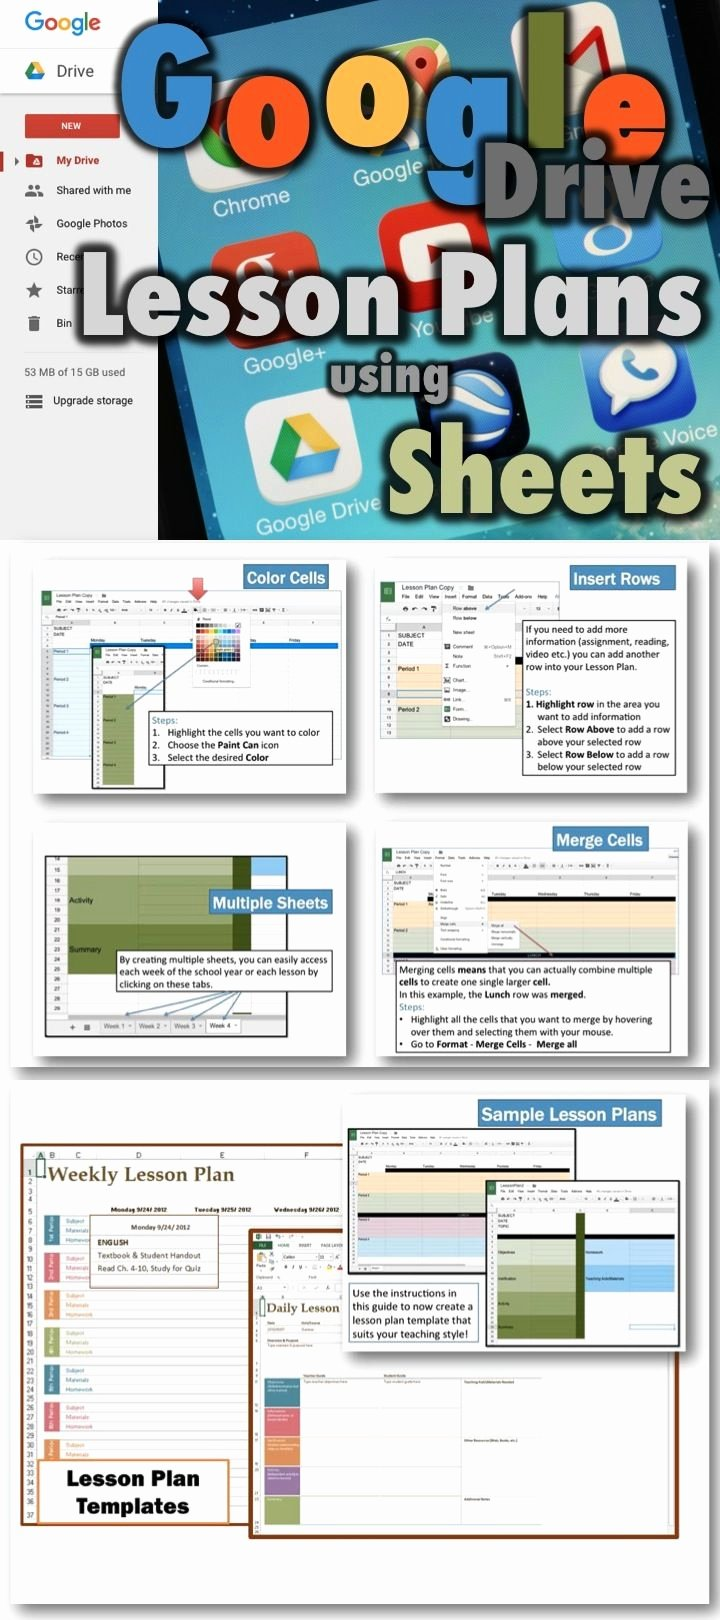 Google Sheets Lesson Plan Template New Lesson Plans Using Google Drive Sheets